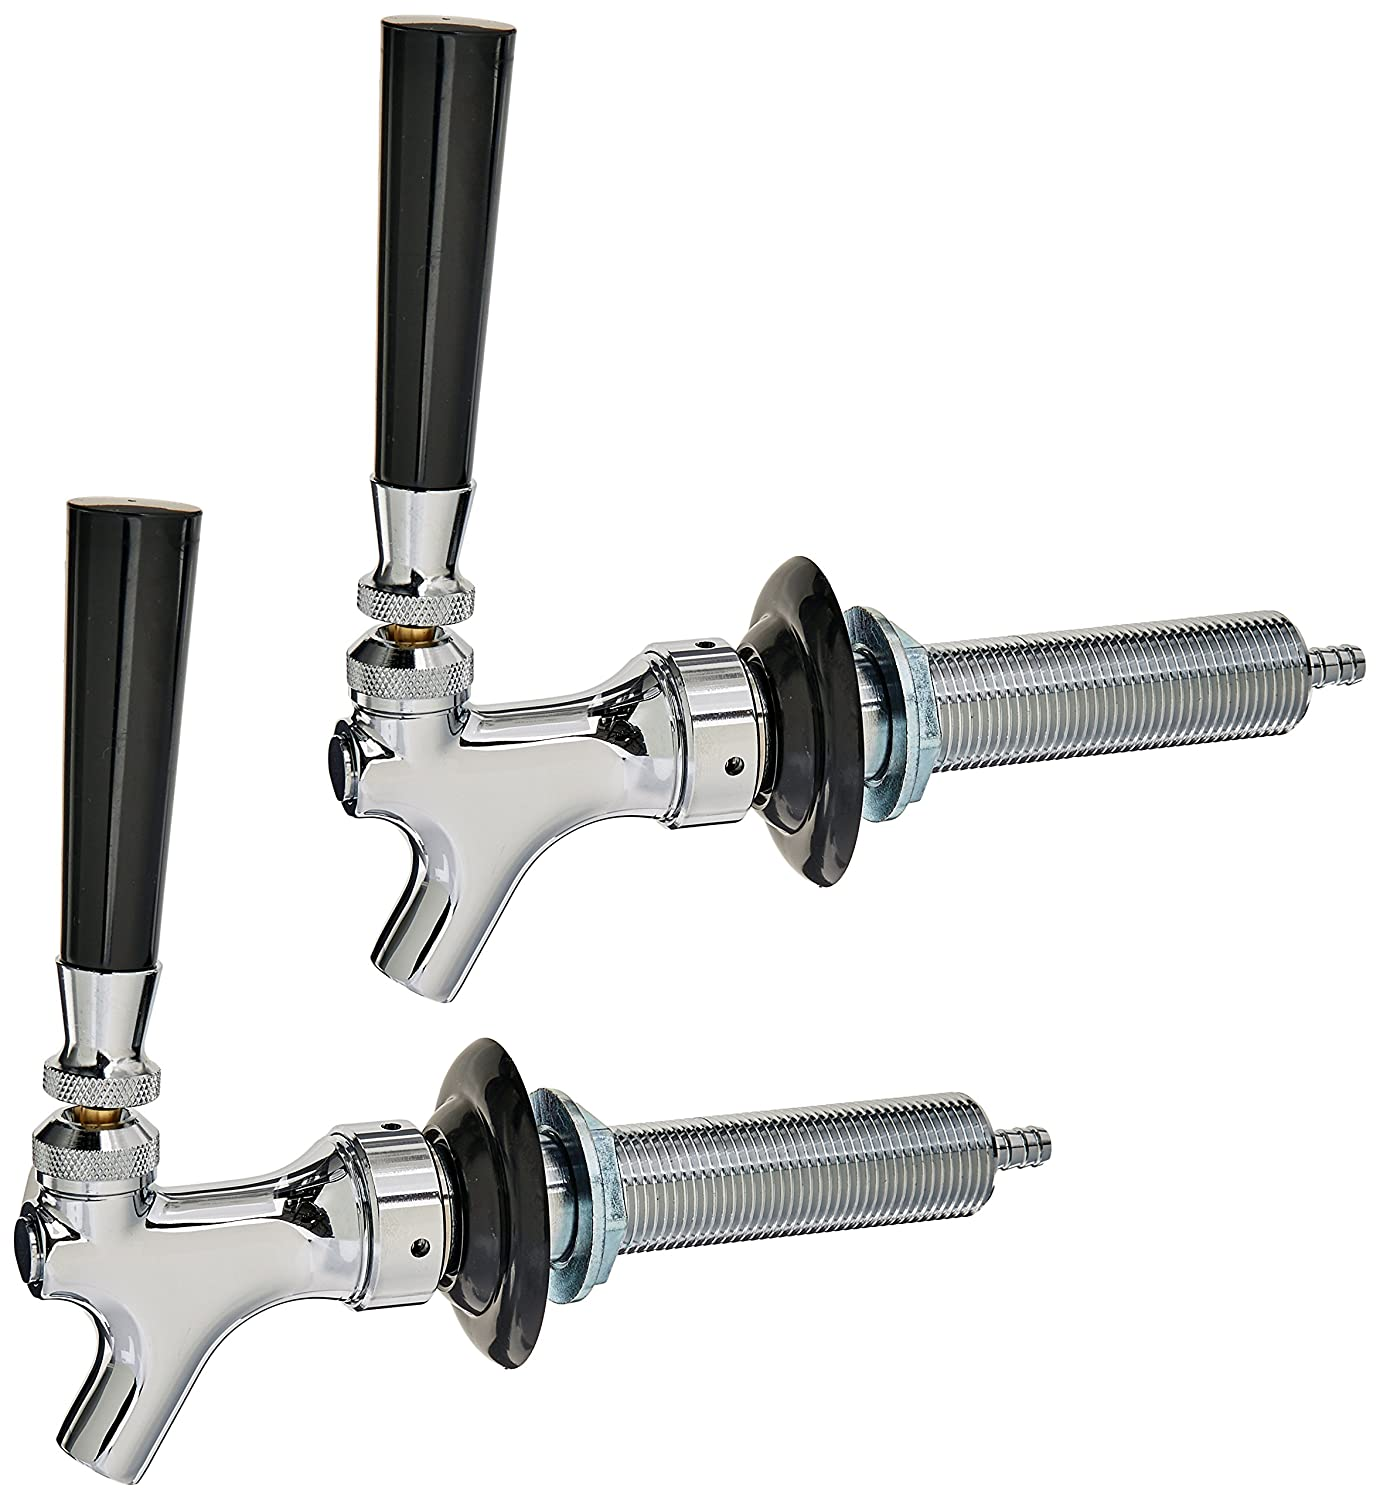 Bev Rite Beer Faucet and 4-Inch Shank Kit with Black Handle (2 Pack) CPCCM201X2